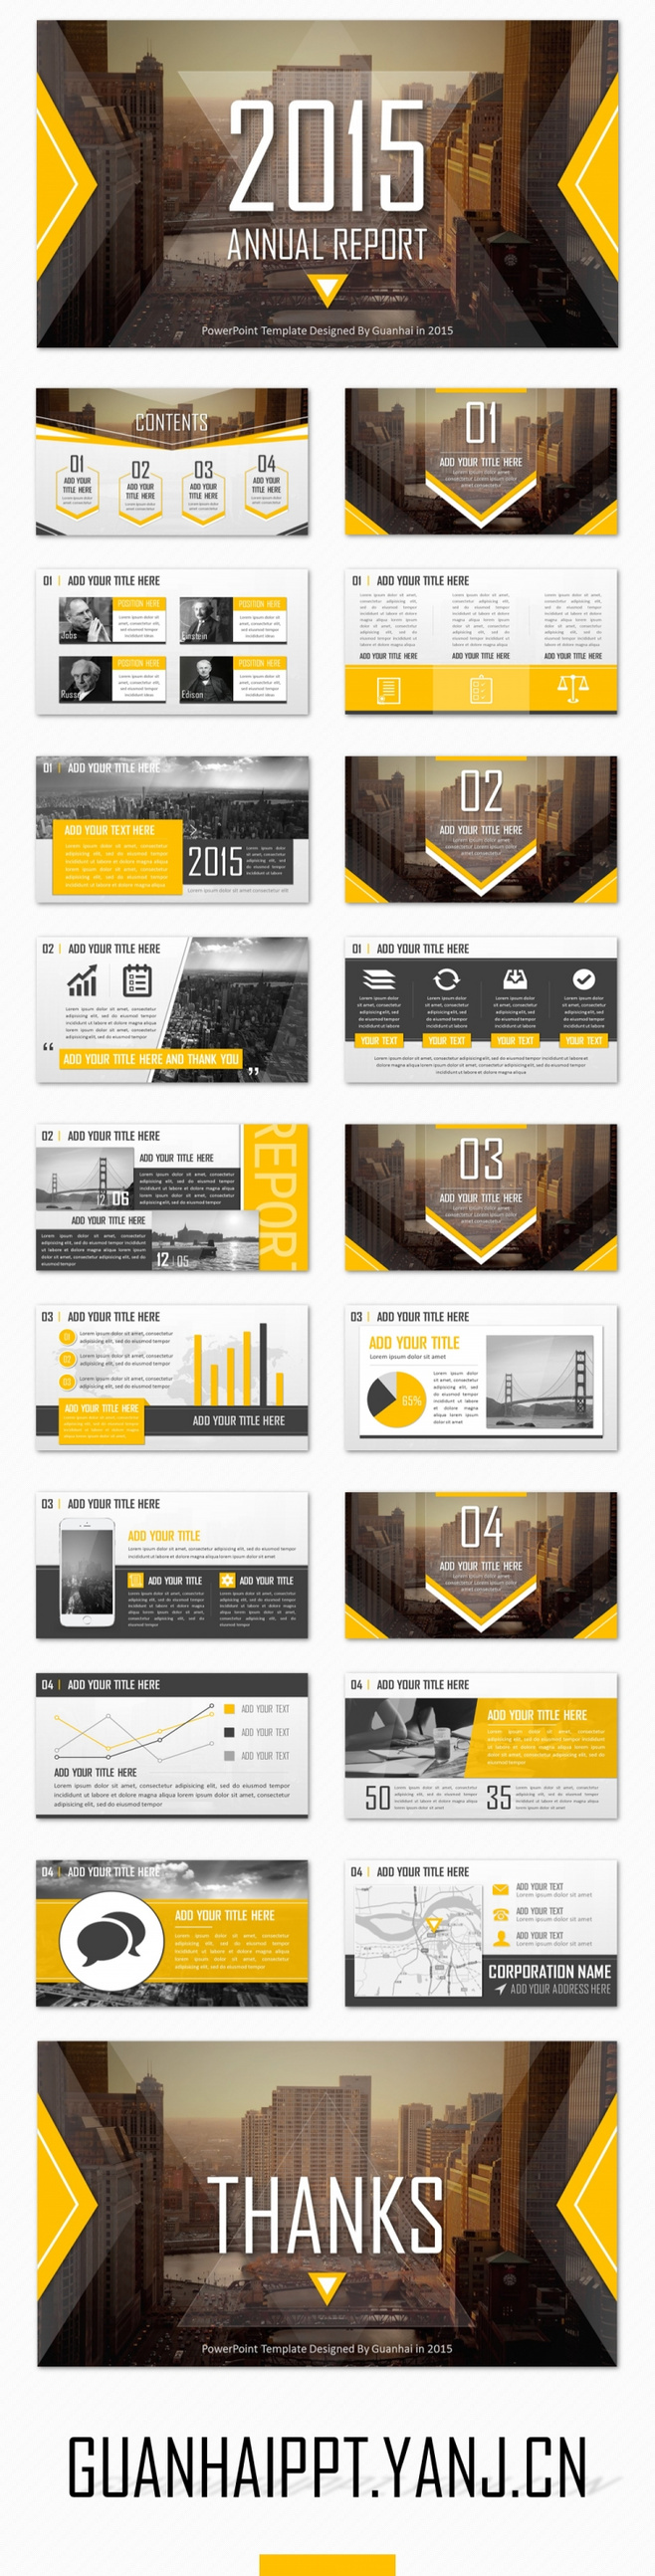 Pin by thao tran on layout pinterest ppt design template and ppt design layout design graphic design ppt template layout template presentation layout power point templates proposal powerpoint themes toneelgroepblik Image collections